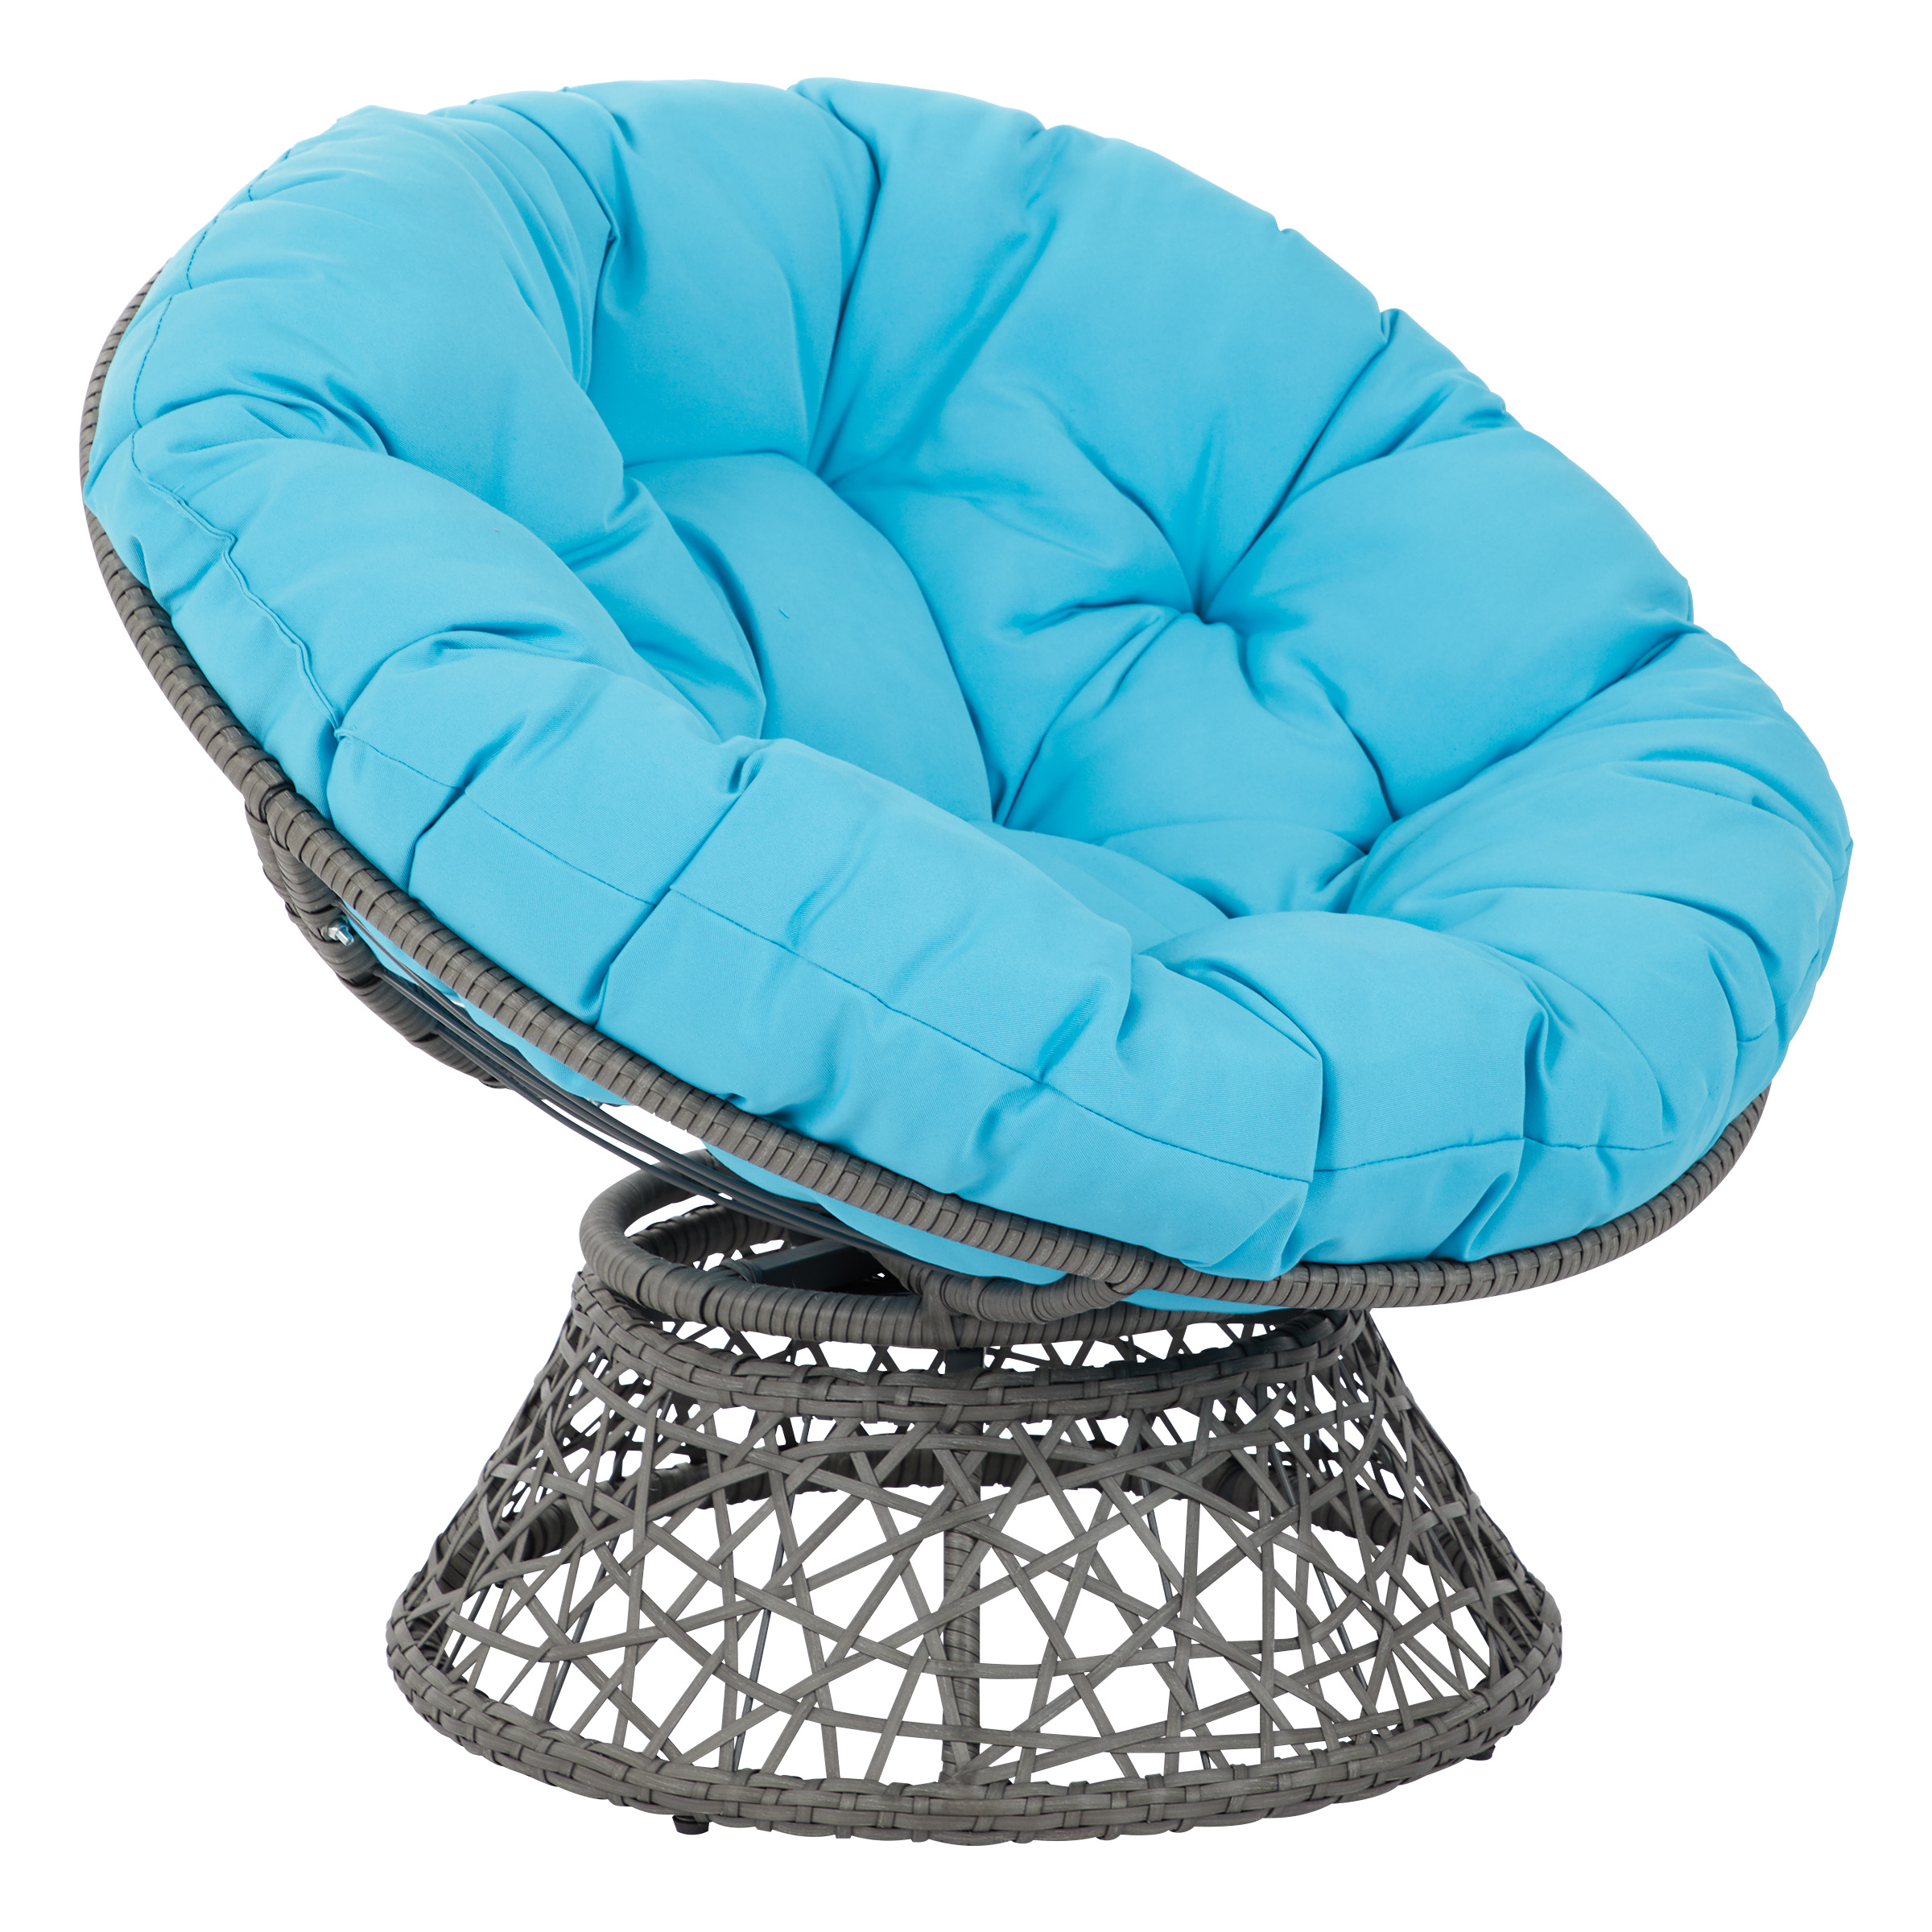 Papasan Chair with Blue cushion and Grey Frame